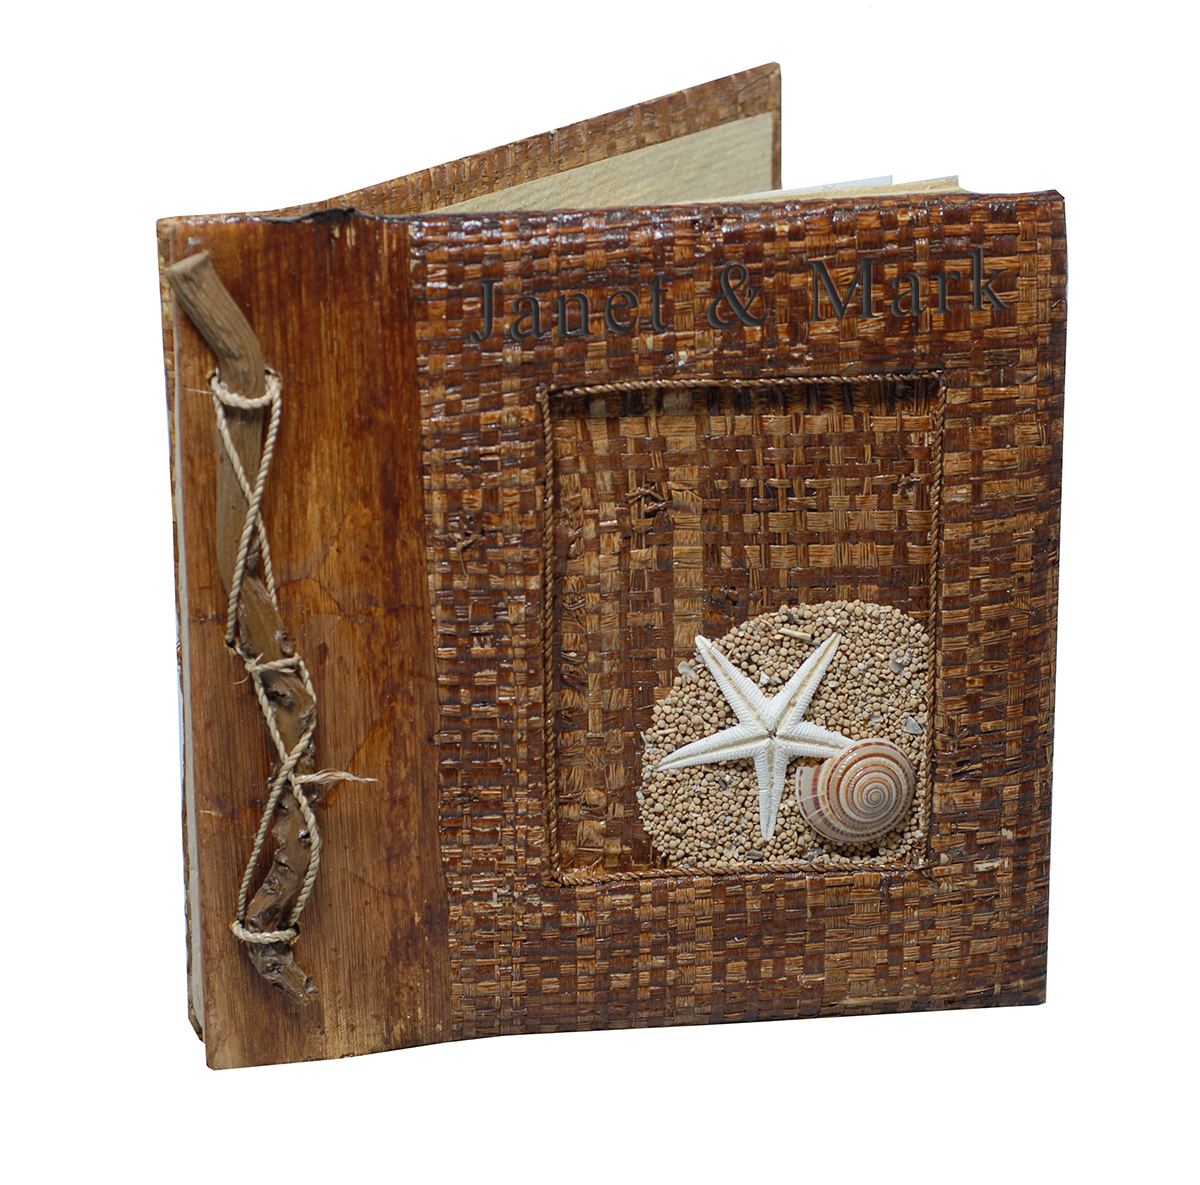 Handcrafted Natural Weaved Beach Starfish Photo Album*